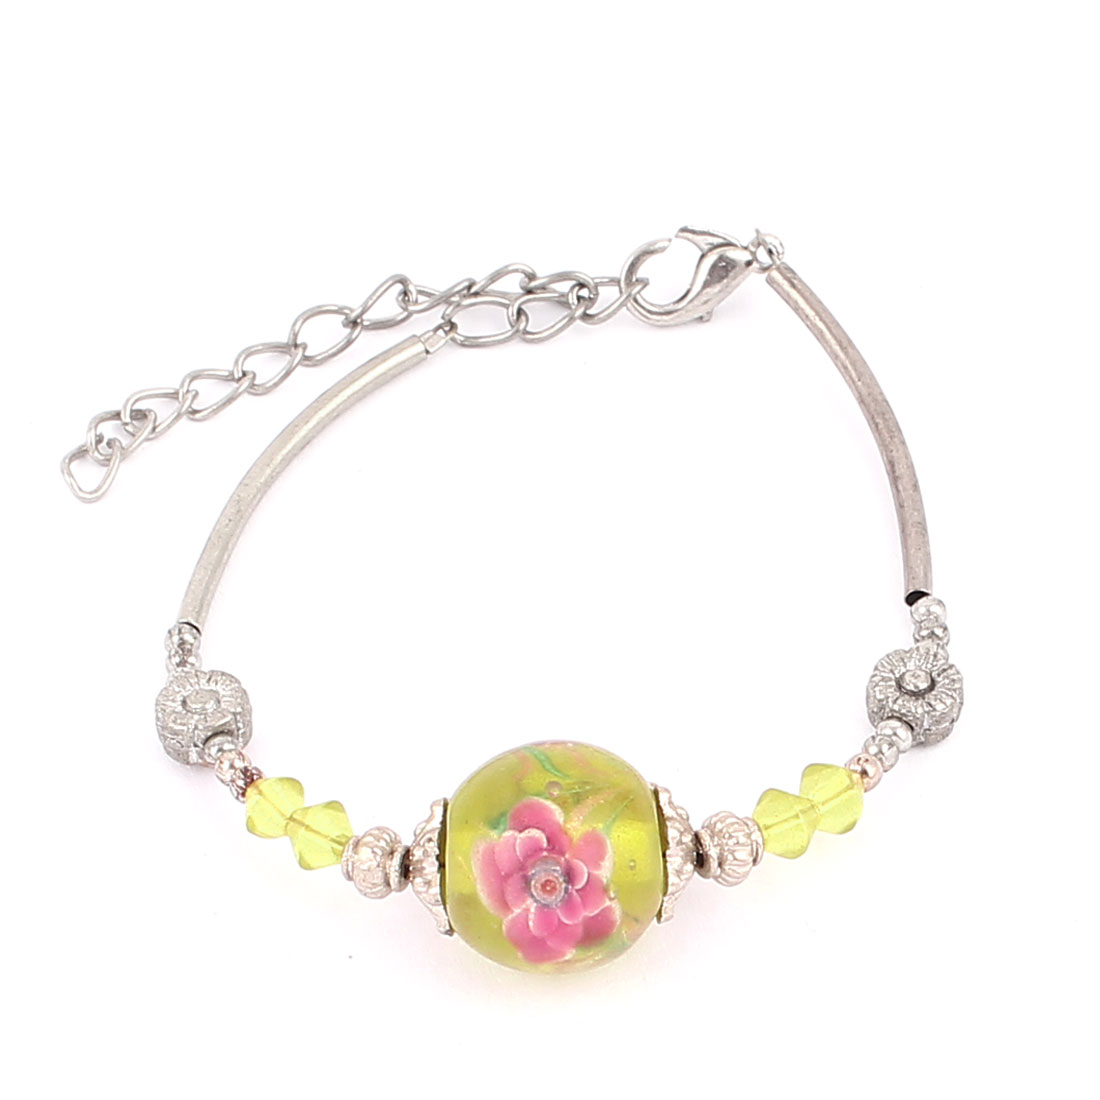 Women Lobster Clasp Link Round Bead Accent Wrist Ornament Bracelet Bangle Yellow